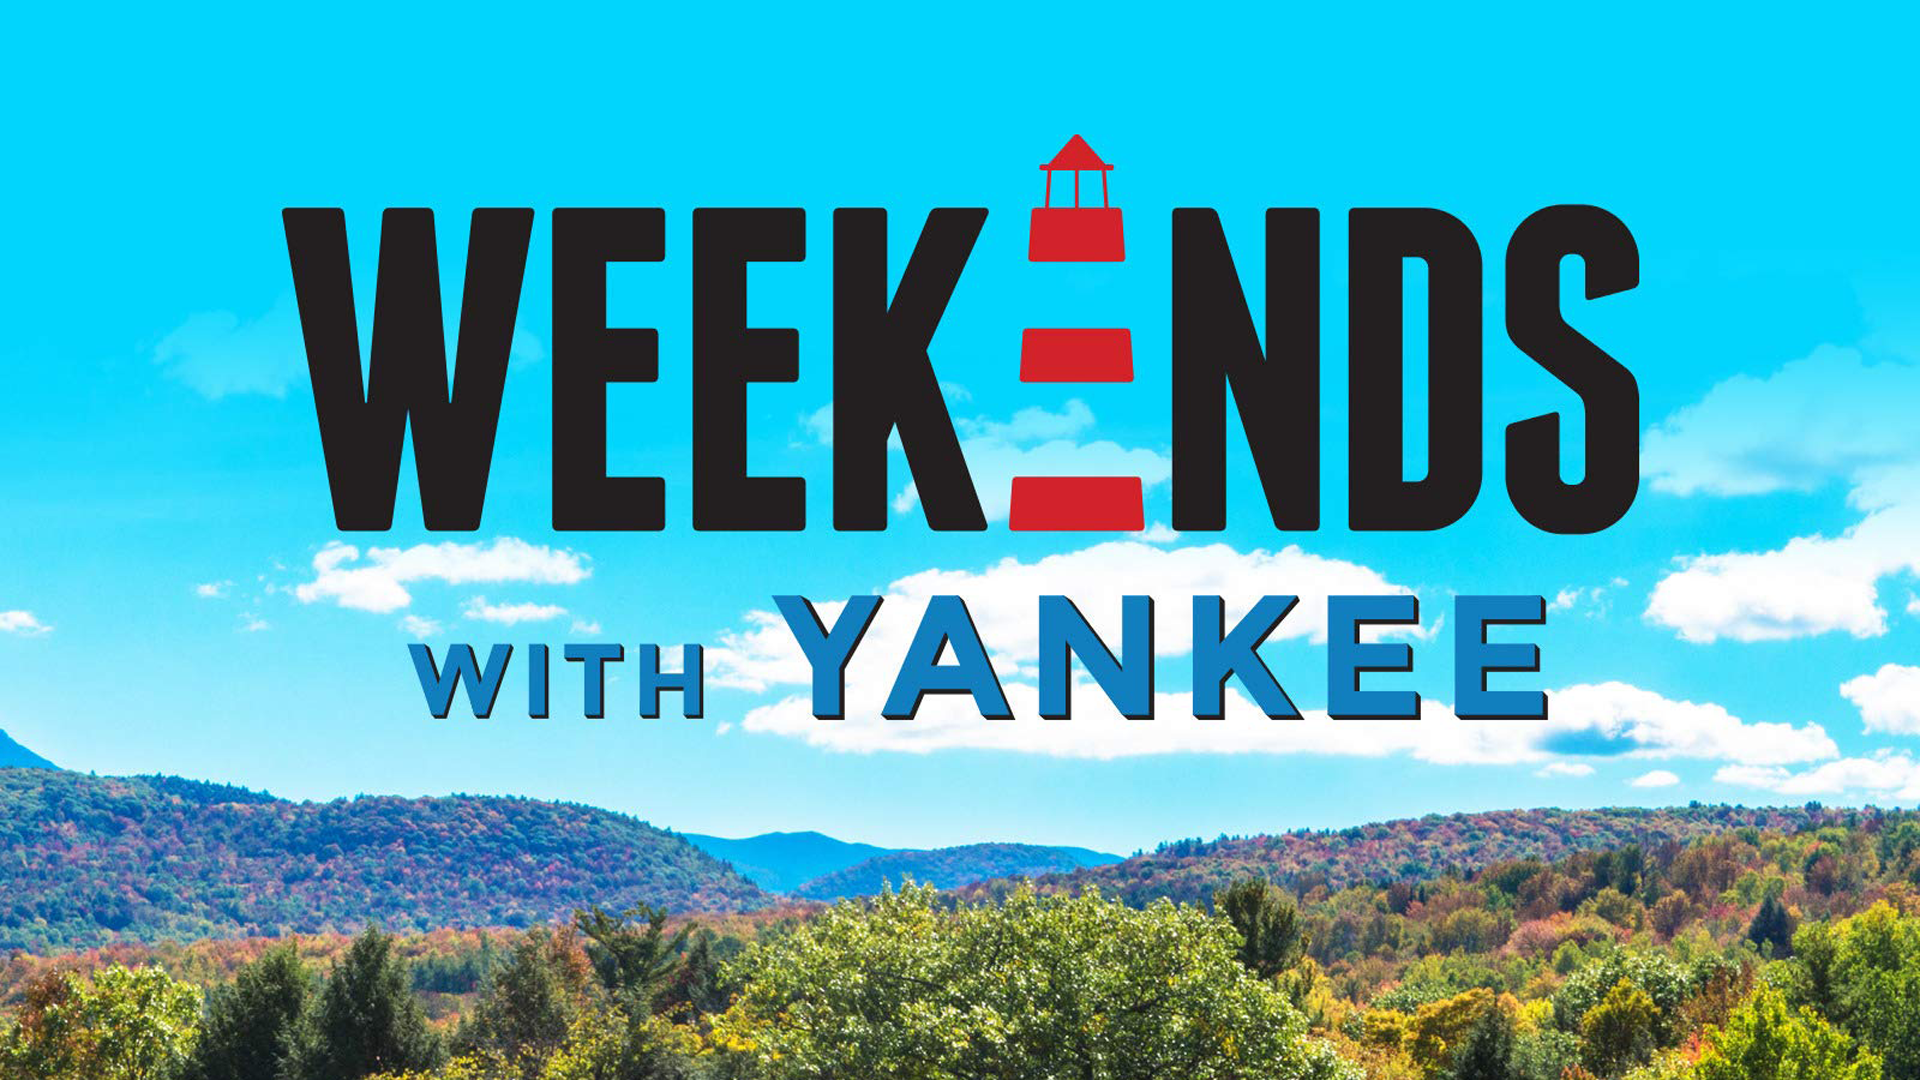 Weekends with Yankee logo